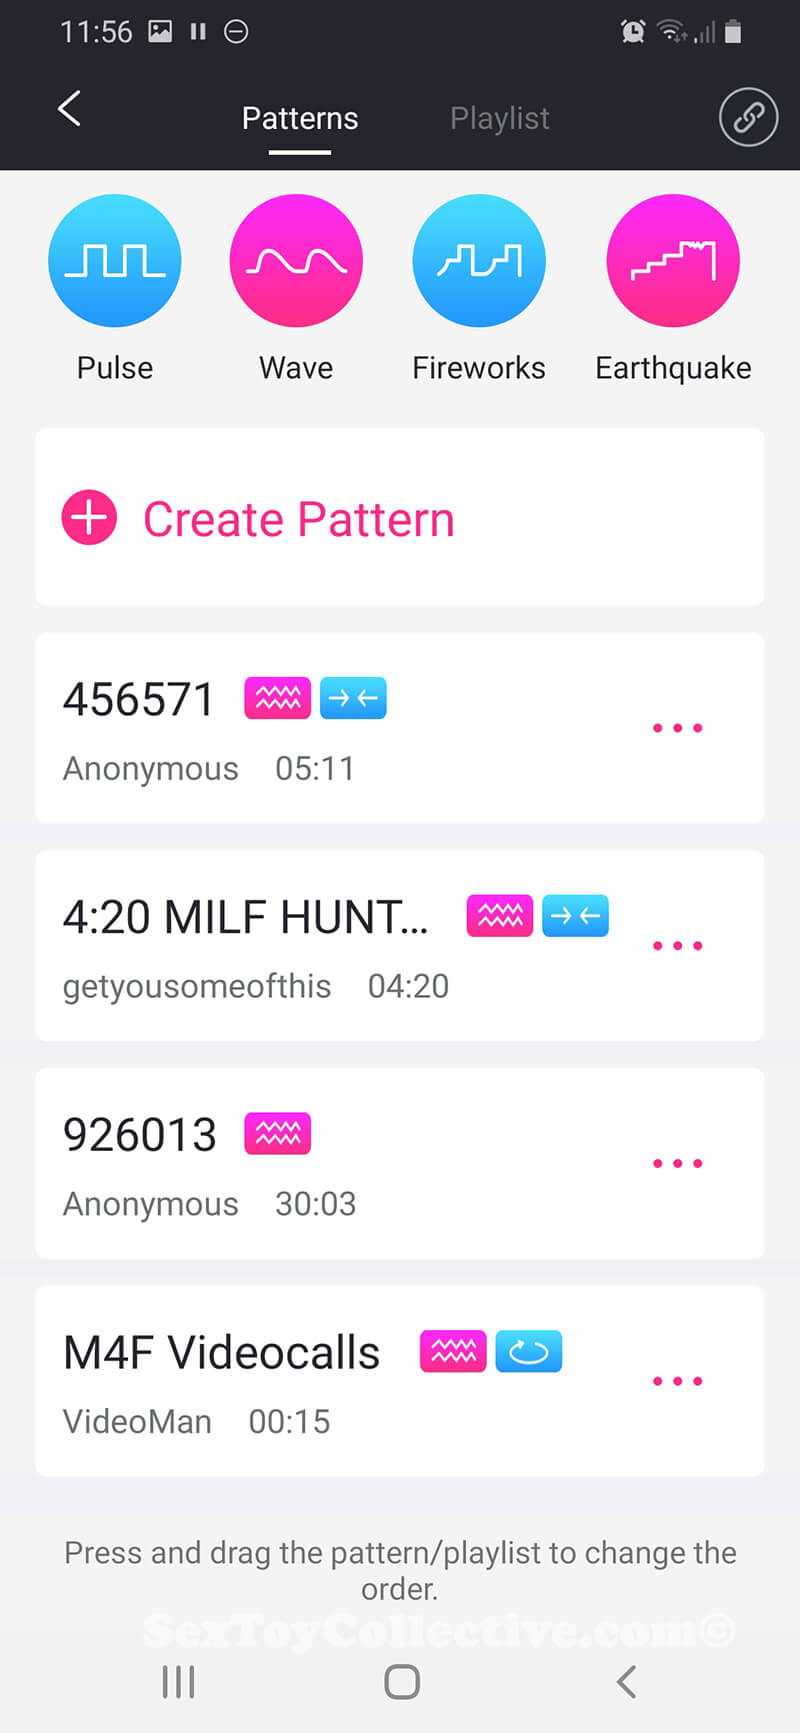 Remote App Lovense Patterns